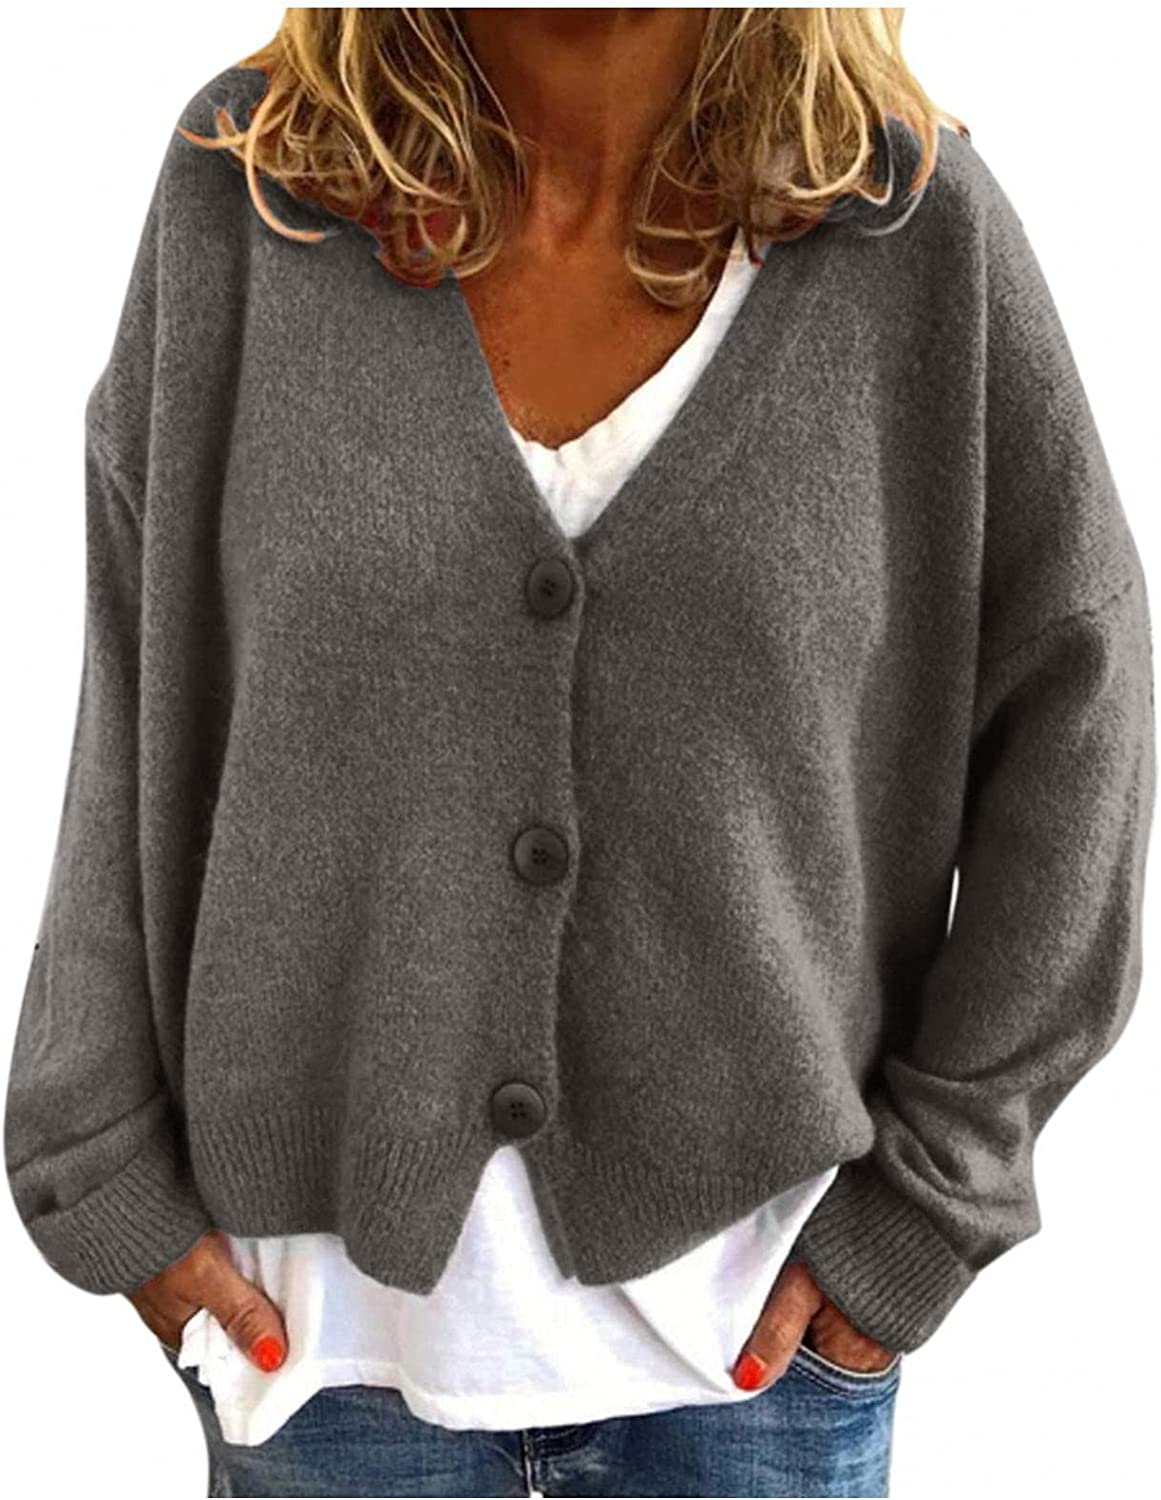 Eduavar Sweaters for Women Cardigan Long Sleeve Cable Knit Sweater Open Front Cardigan Top Casual Loose Fall Button Coat